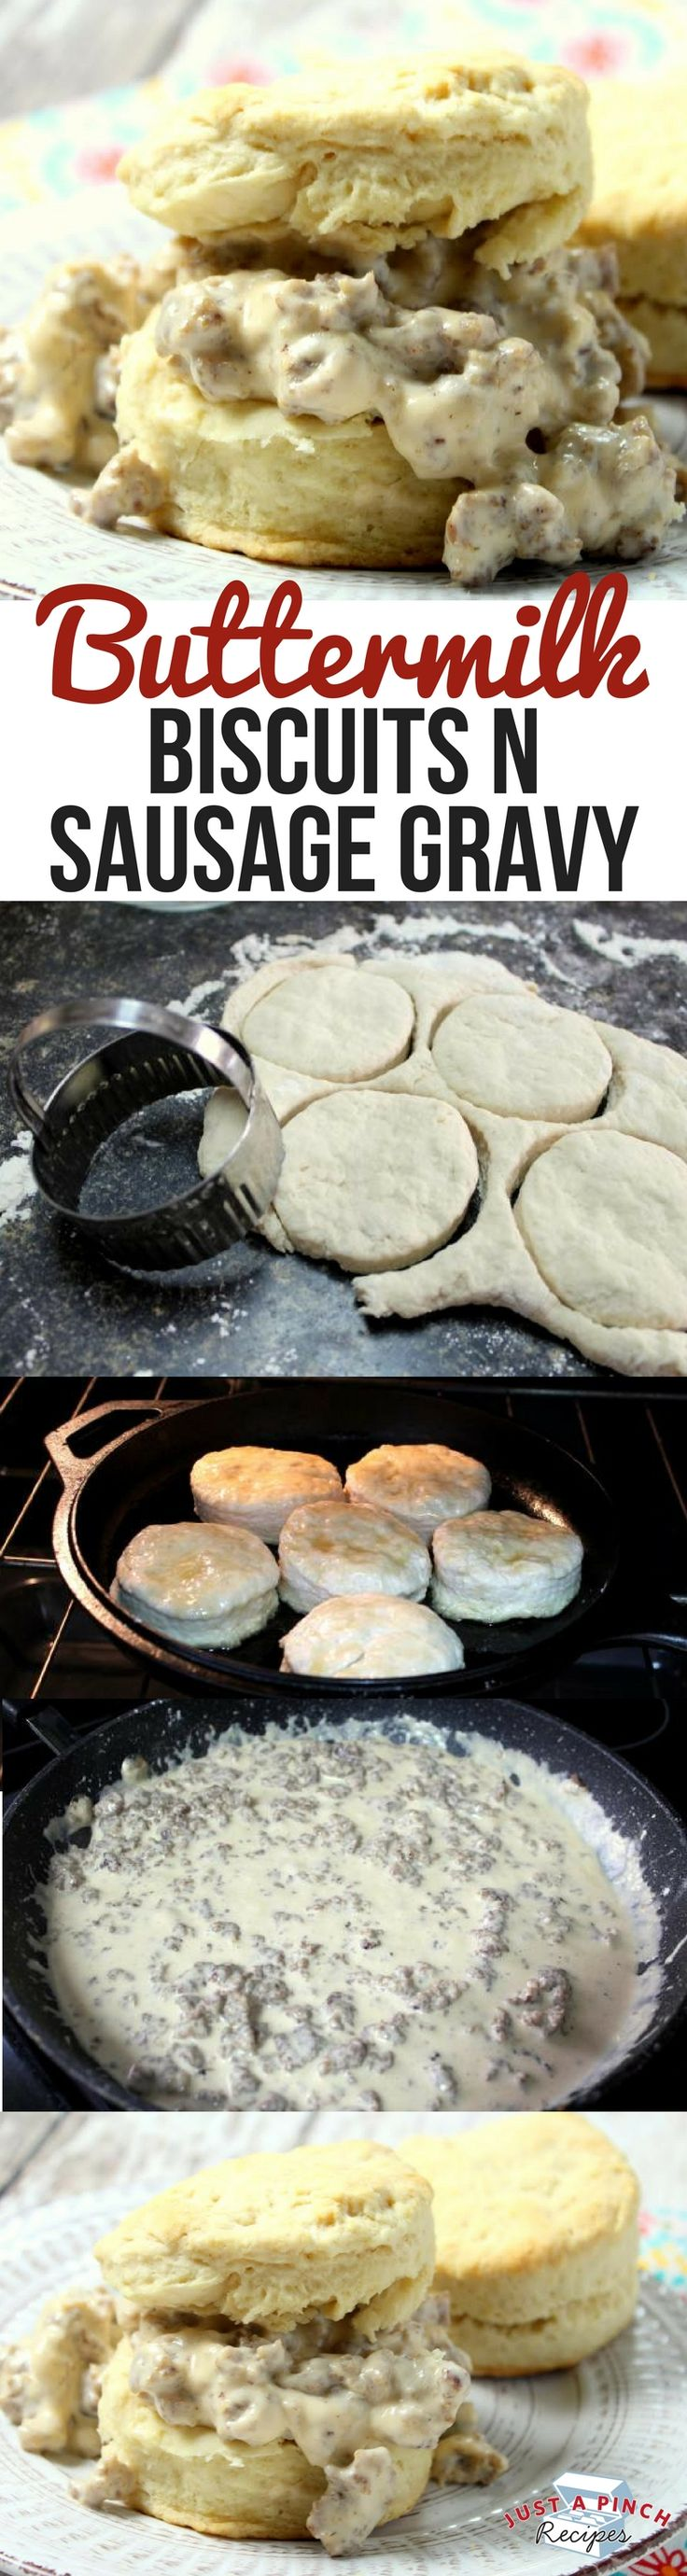 Easy homemade buttermilk biscuits and sausage gravy recipe! This is ready in just 35 minutes!